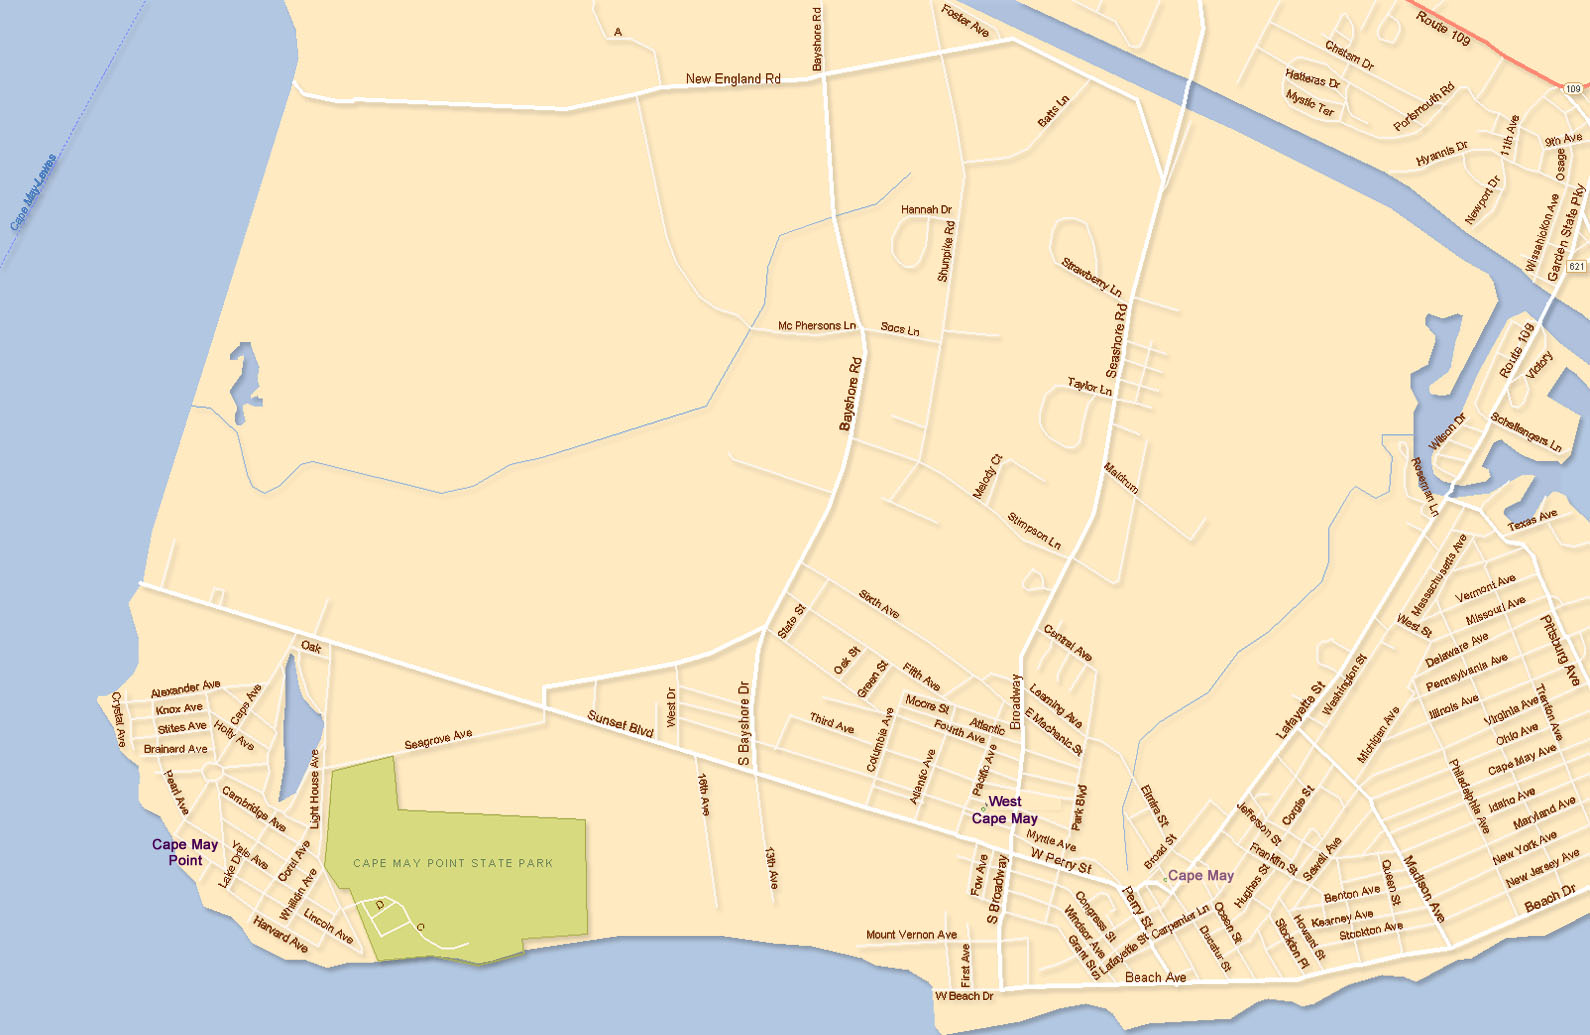 West Cape May, NJ and Cape May Point, NJ Maps Cape May Nj Map on